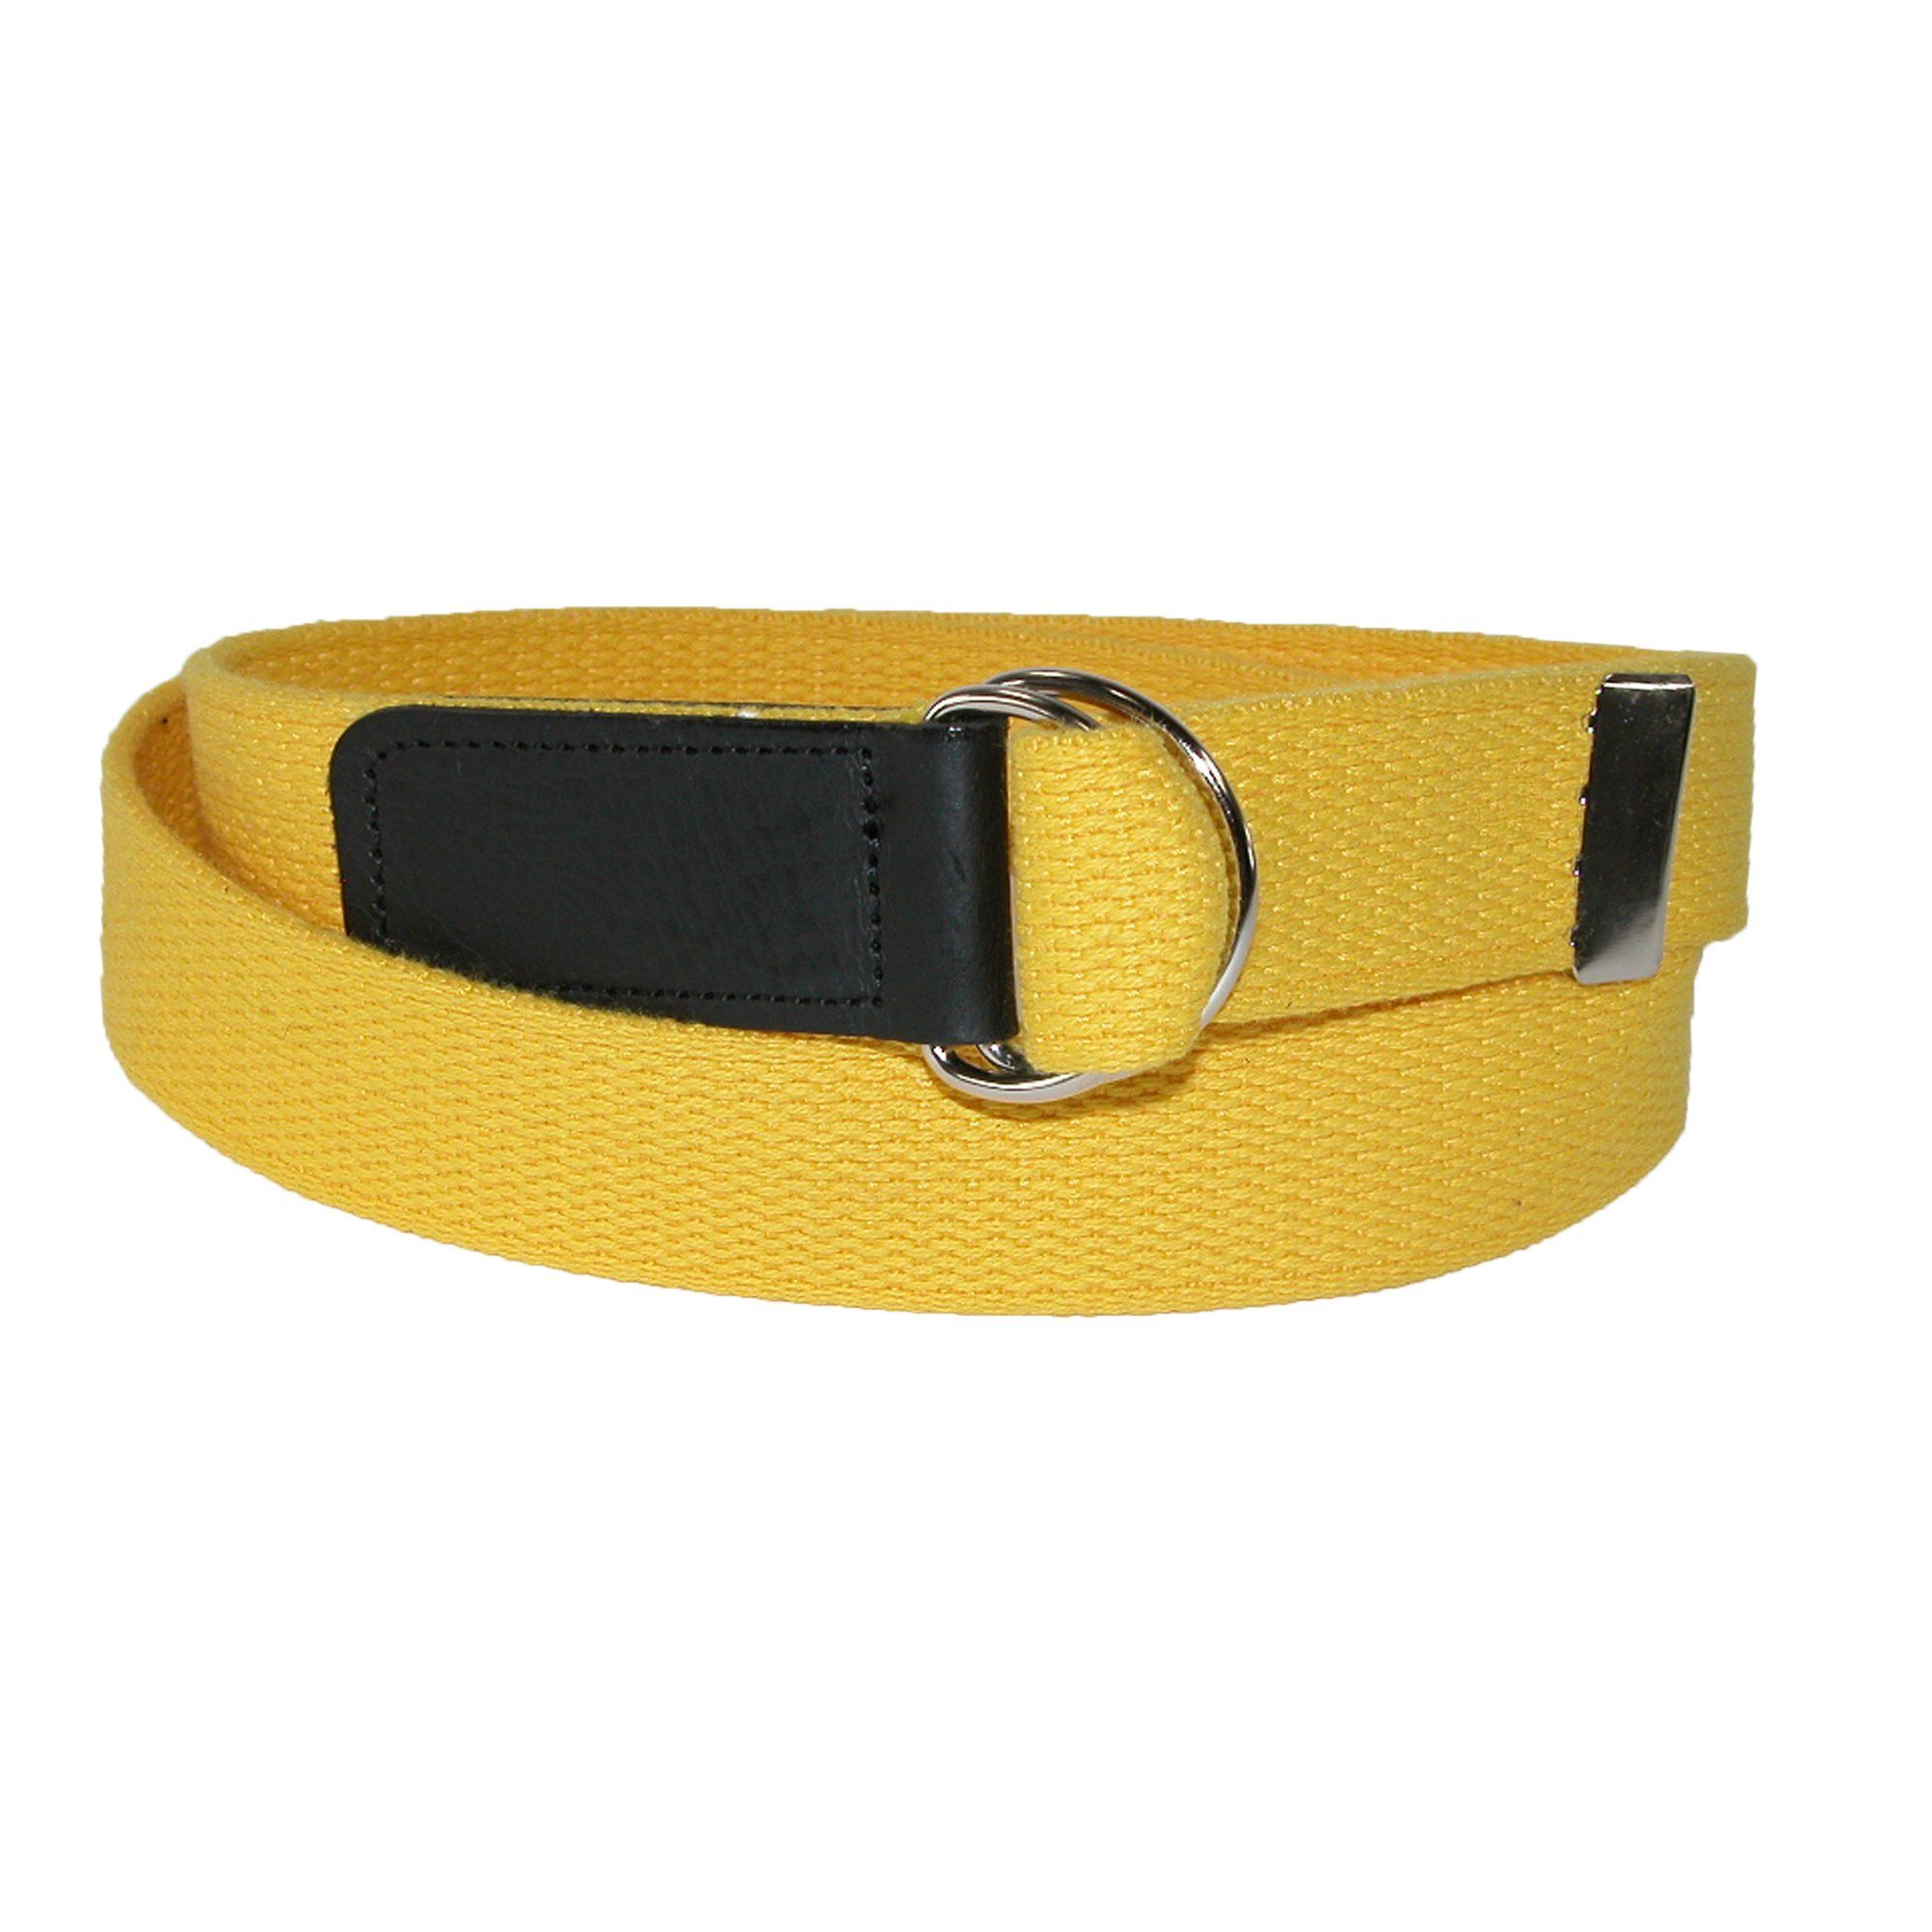 Ctm Plus Size Cotton Web Belt With Double D Ring Buckle Belt